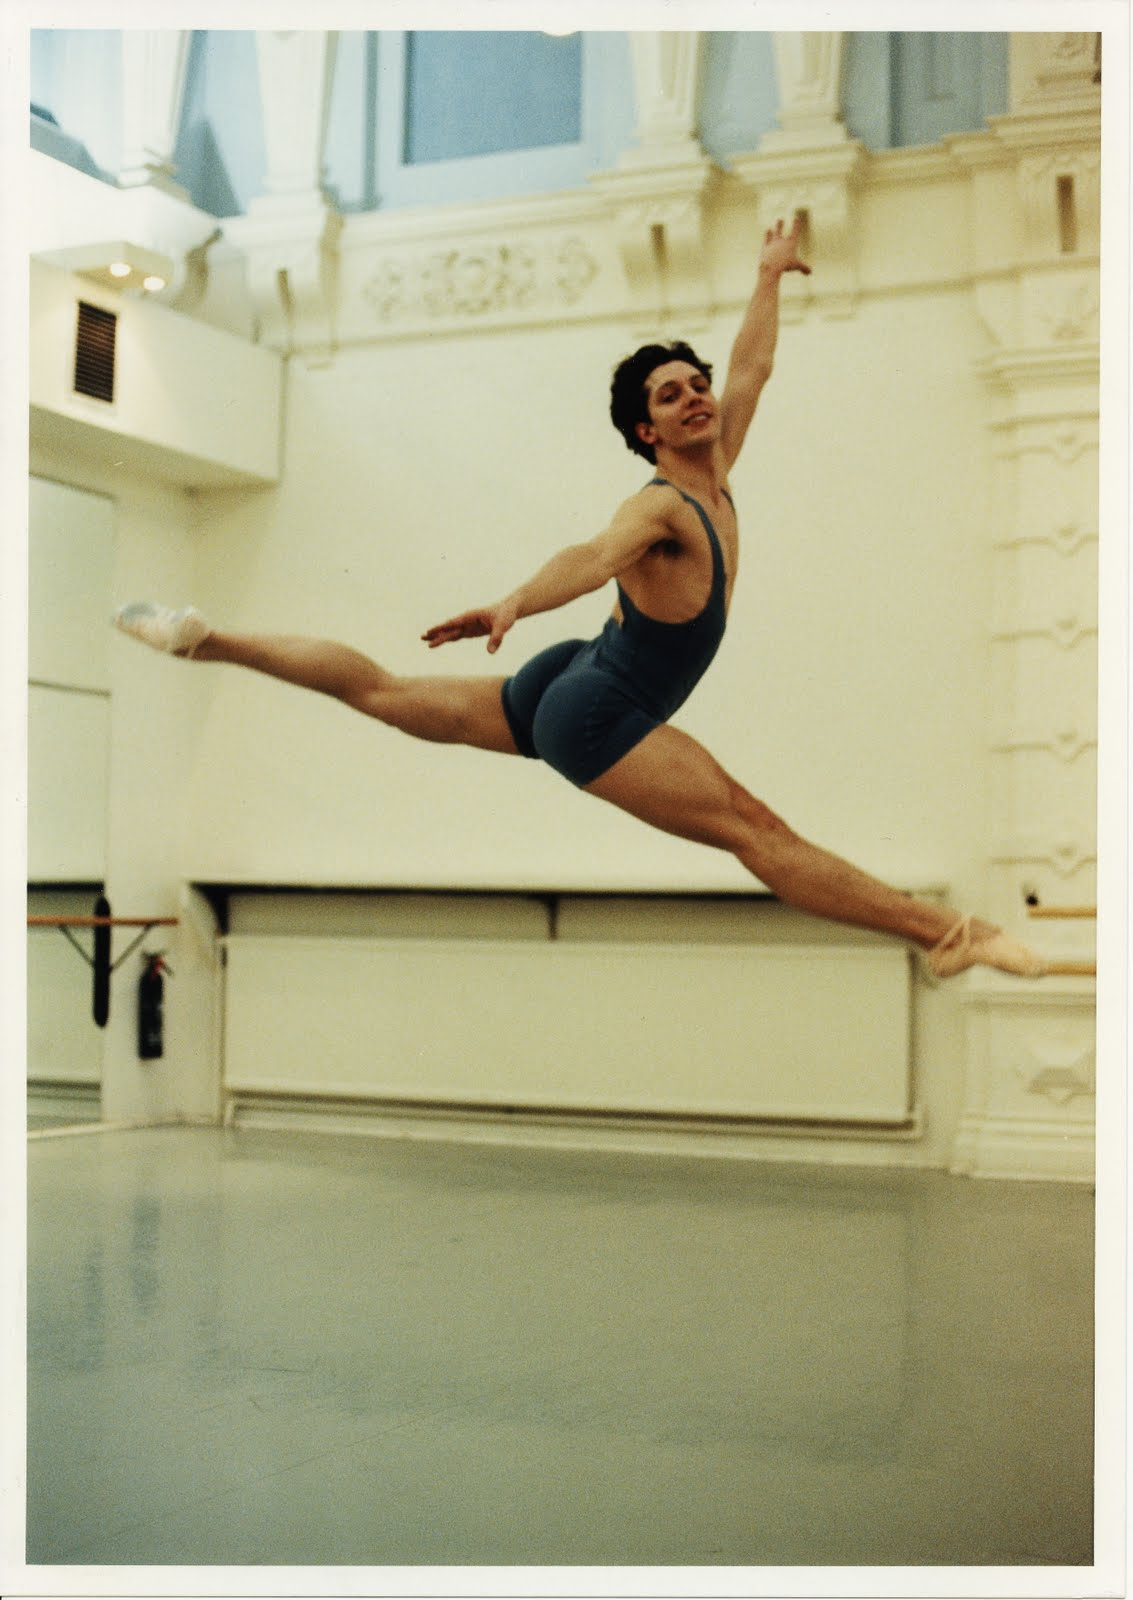 Daniel Jones - jeté atournee, Photo : Bill Cooper